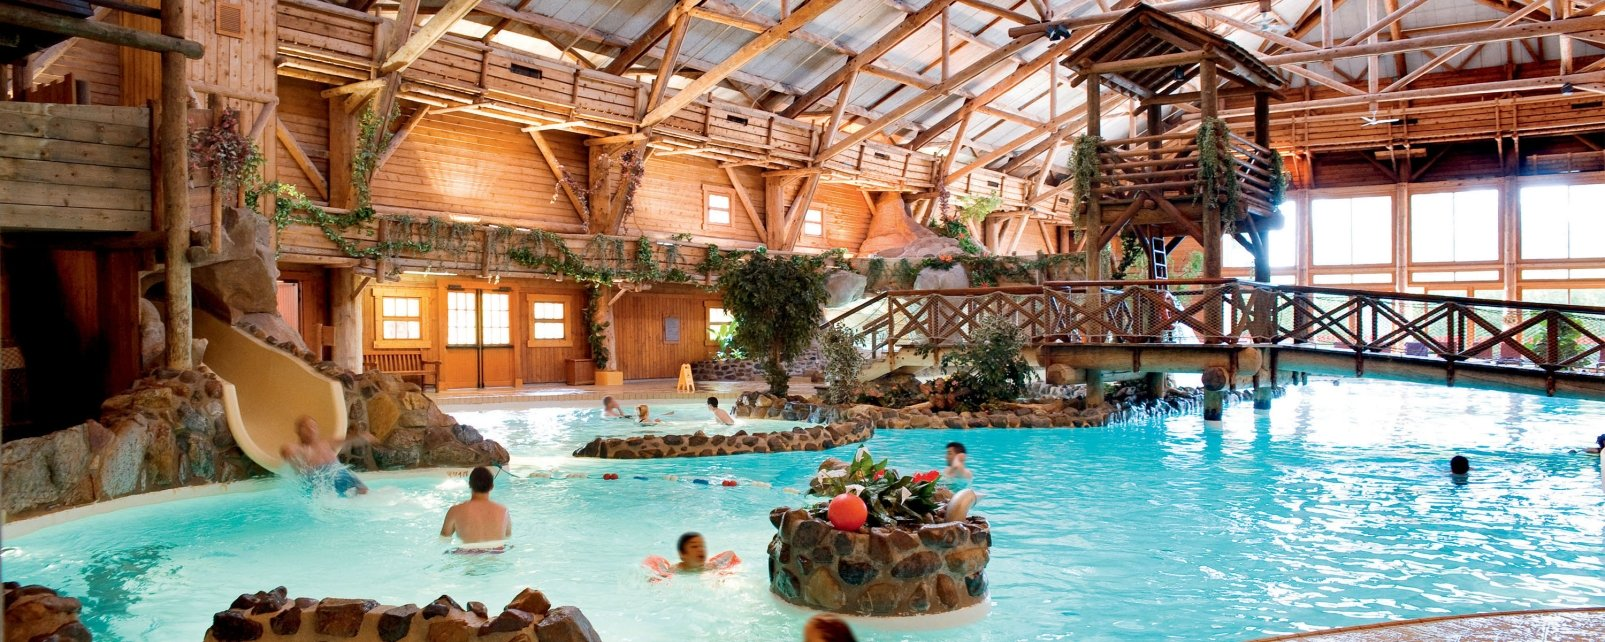 Hotel disney 39 s davy crockett ranch in marne la vall e for Appart hotel paris avec piscine